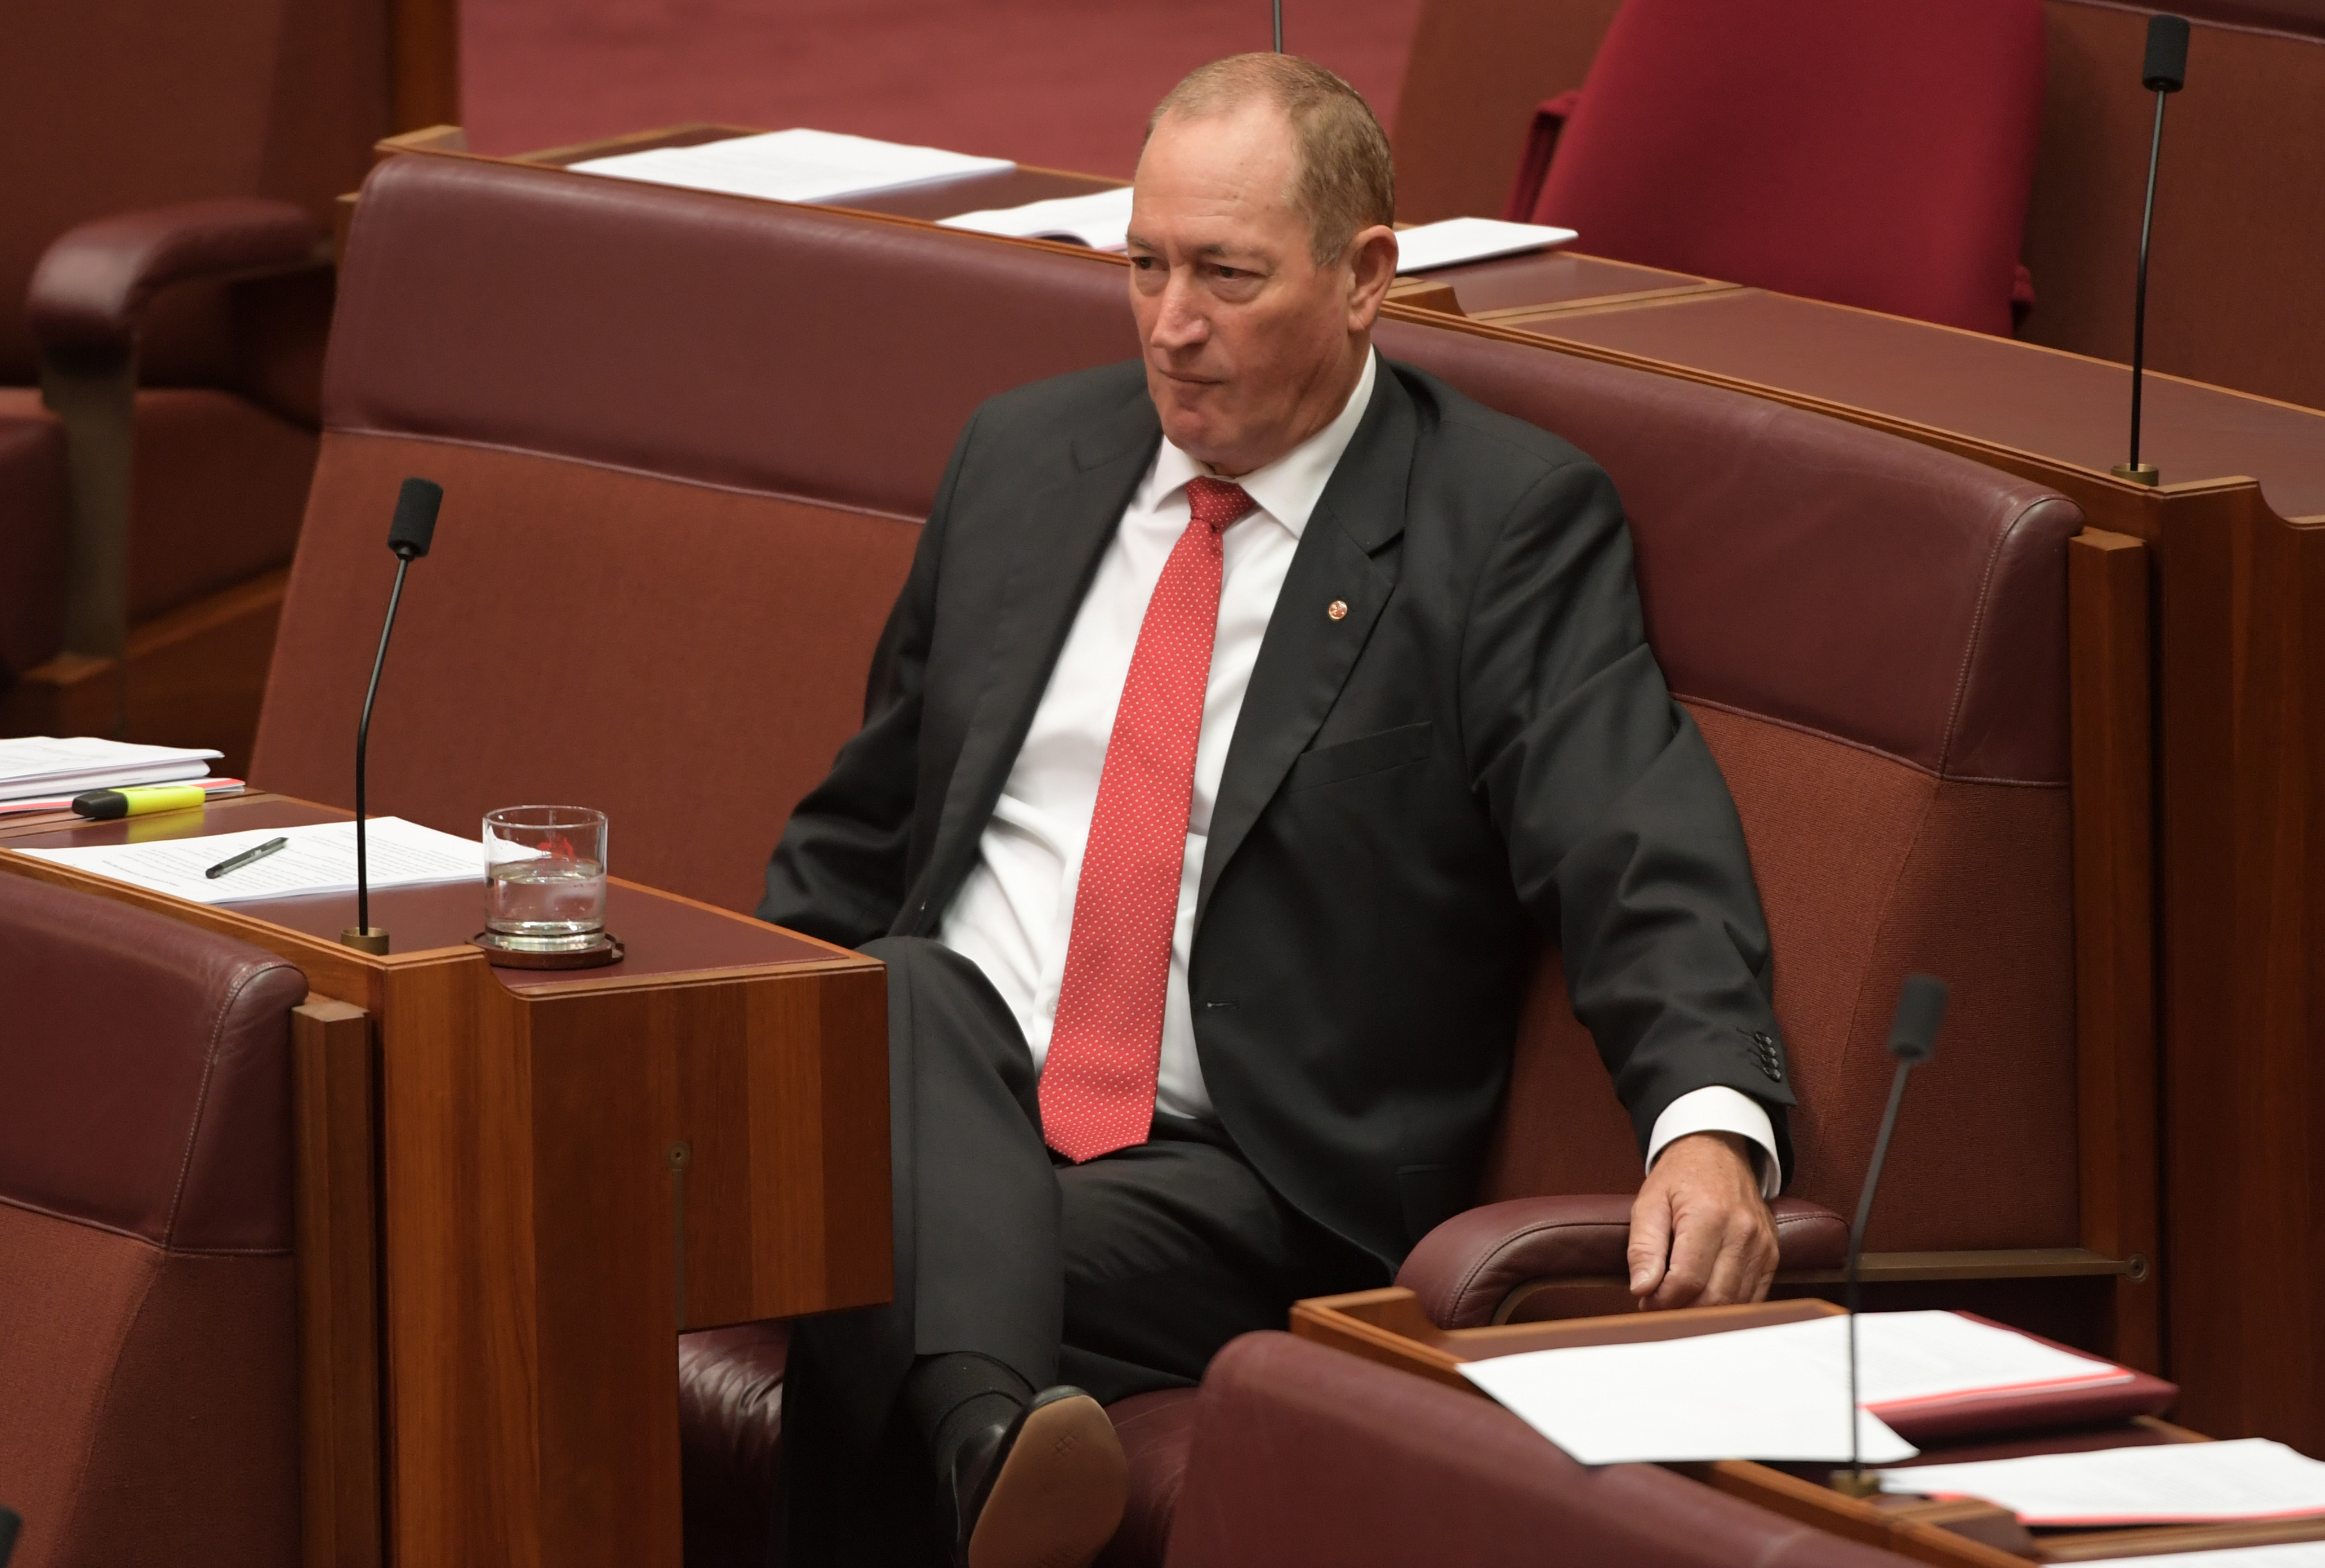 Senator Fraser Anning in the Senate at Parliament House, Canberra.